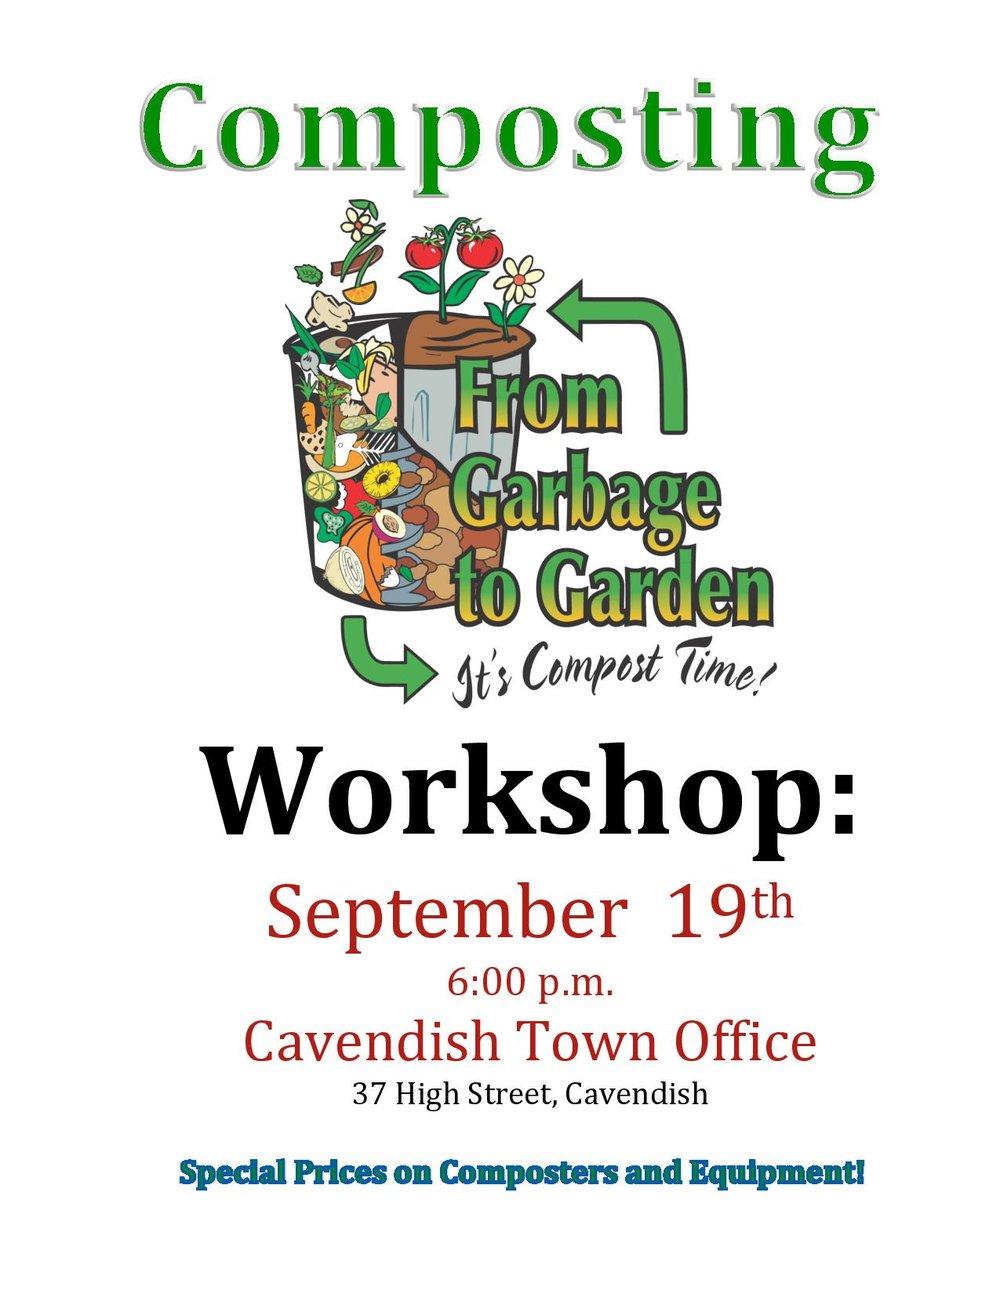 Sept 2017 Composting Workshop Flyer-page-001.jpg